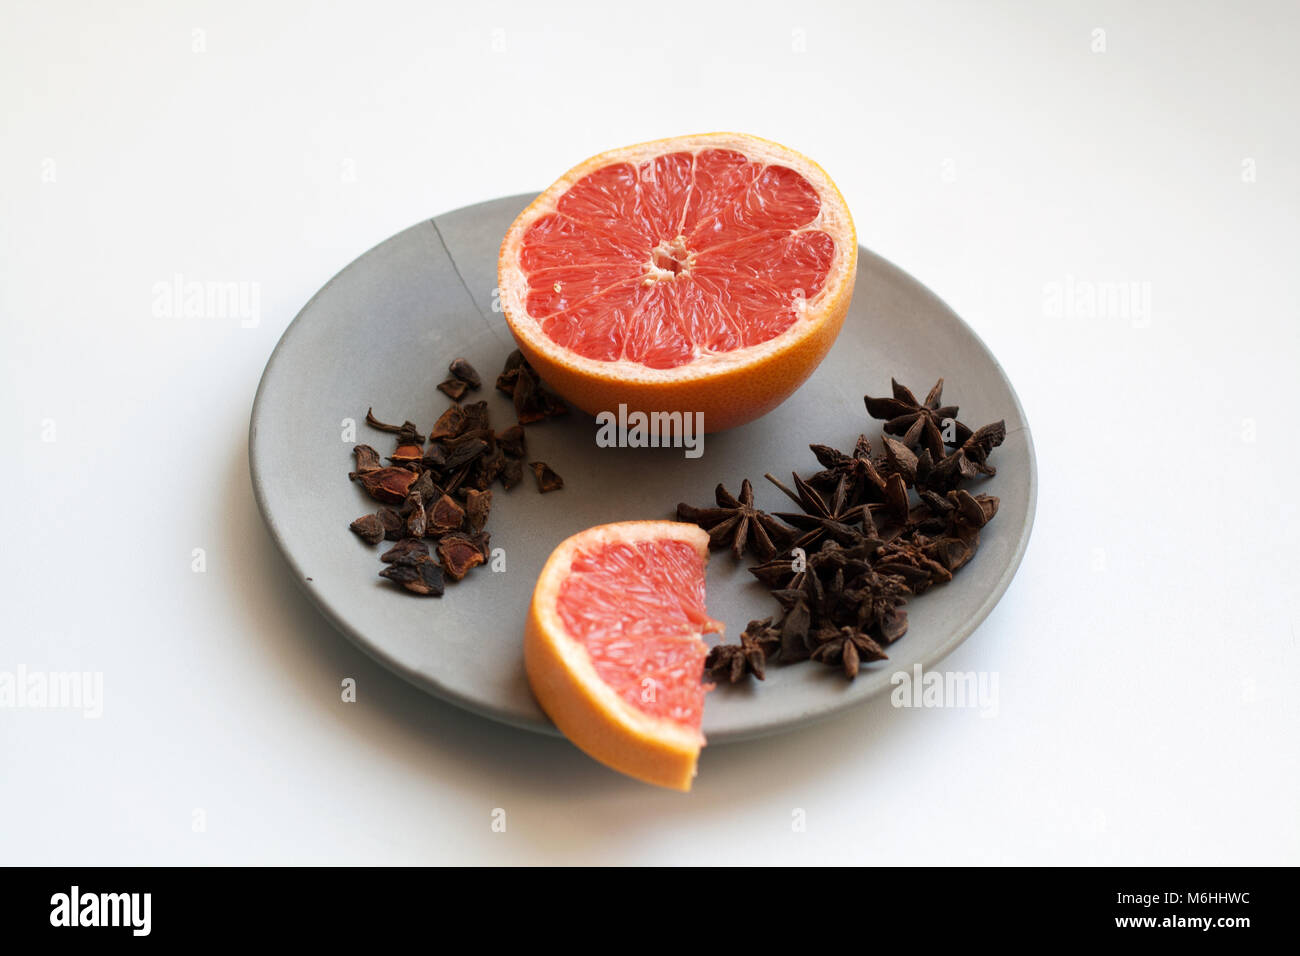 Fresh grapefruit slices and heap of star anise species isolated on grey concrete plate - Stock Image